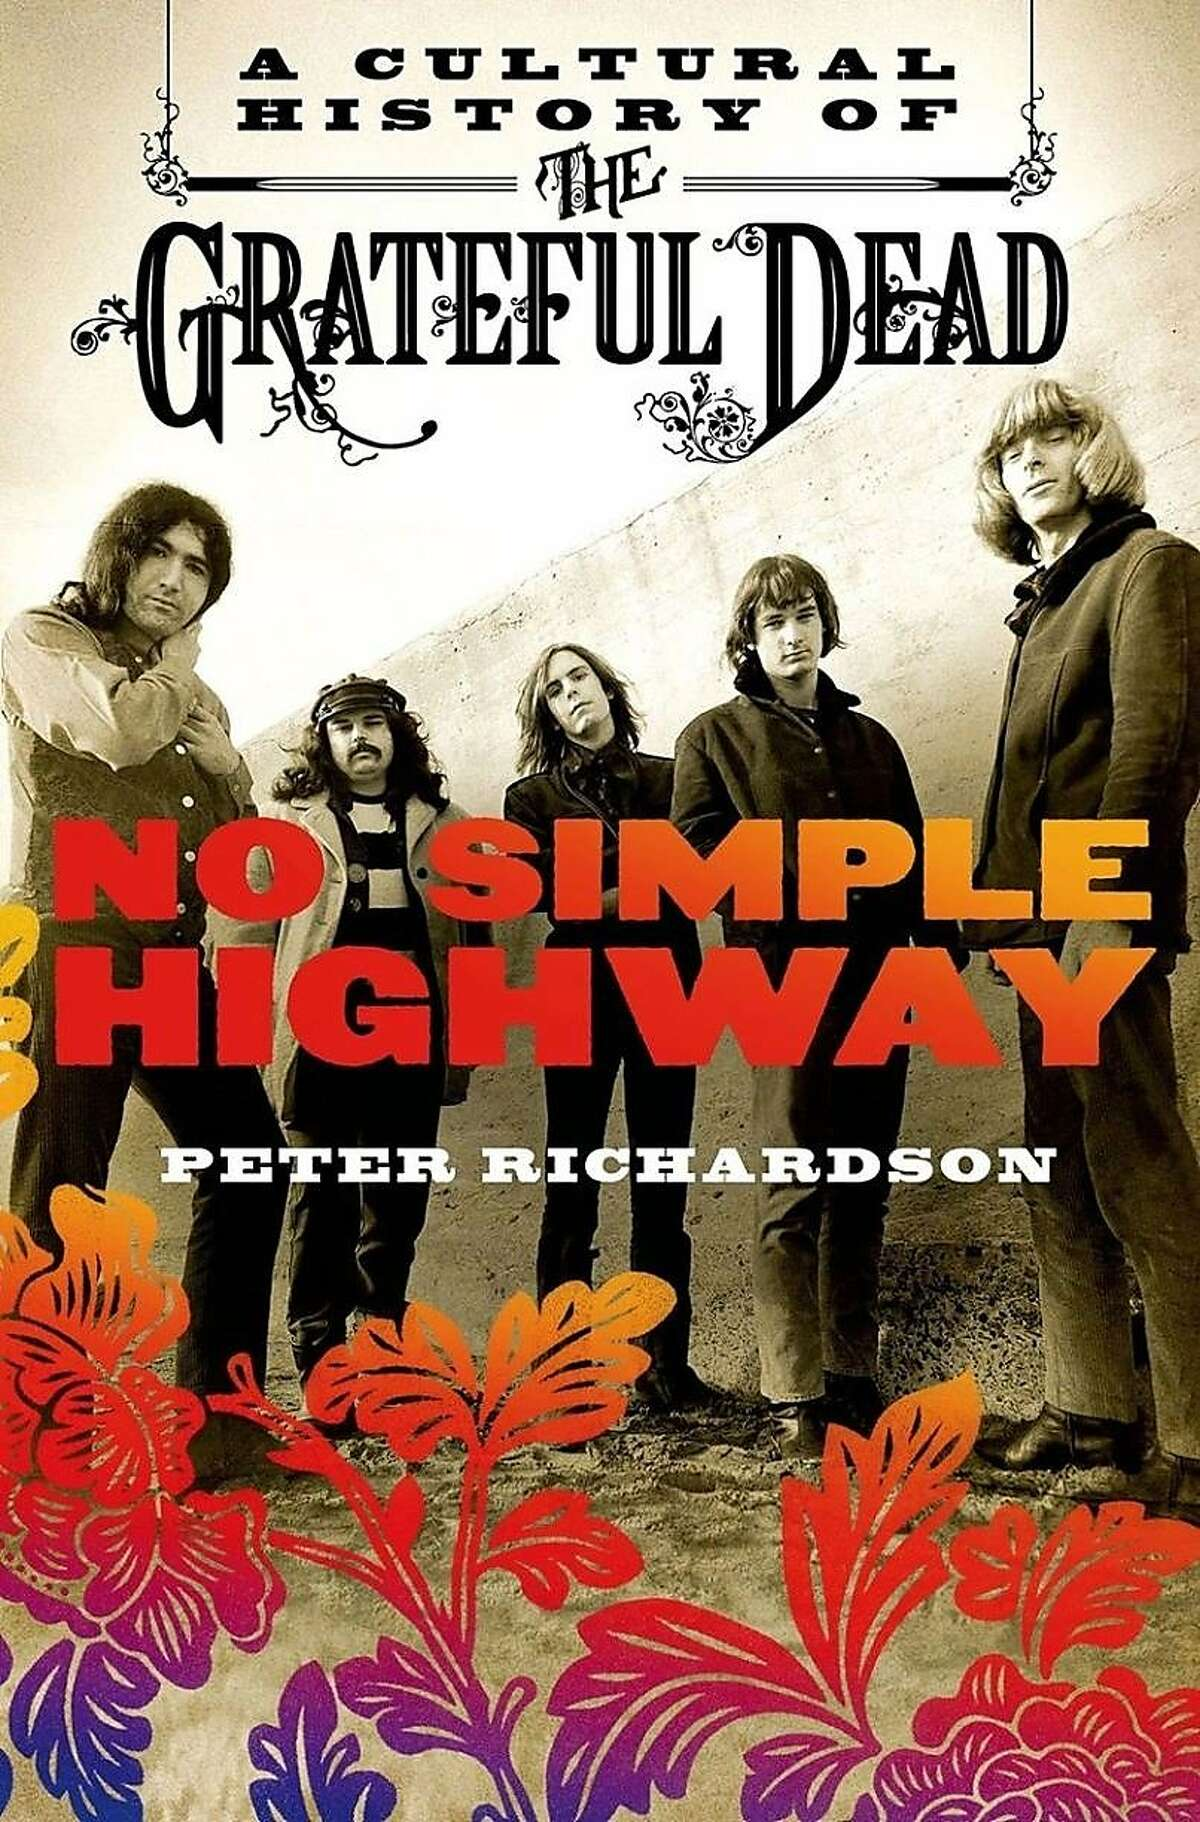 """""""No Simple Highway: A Cultural History of the Grateful Dead"""" By Peter Richardson"""